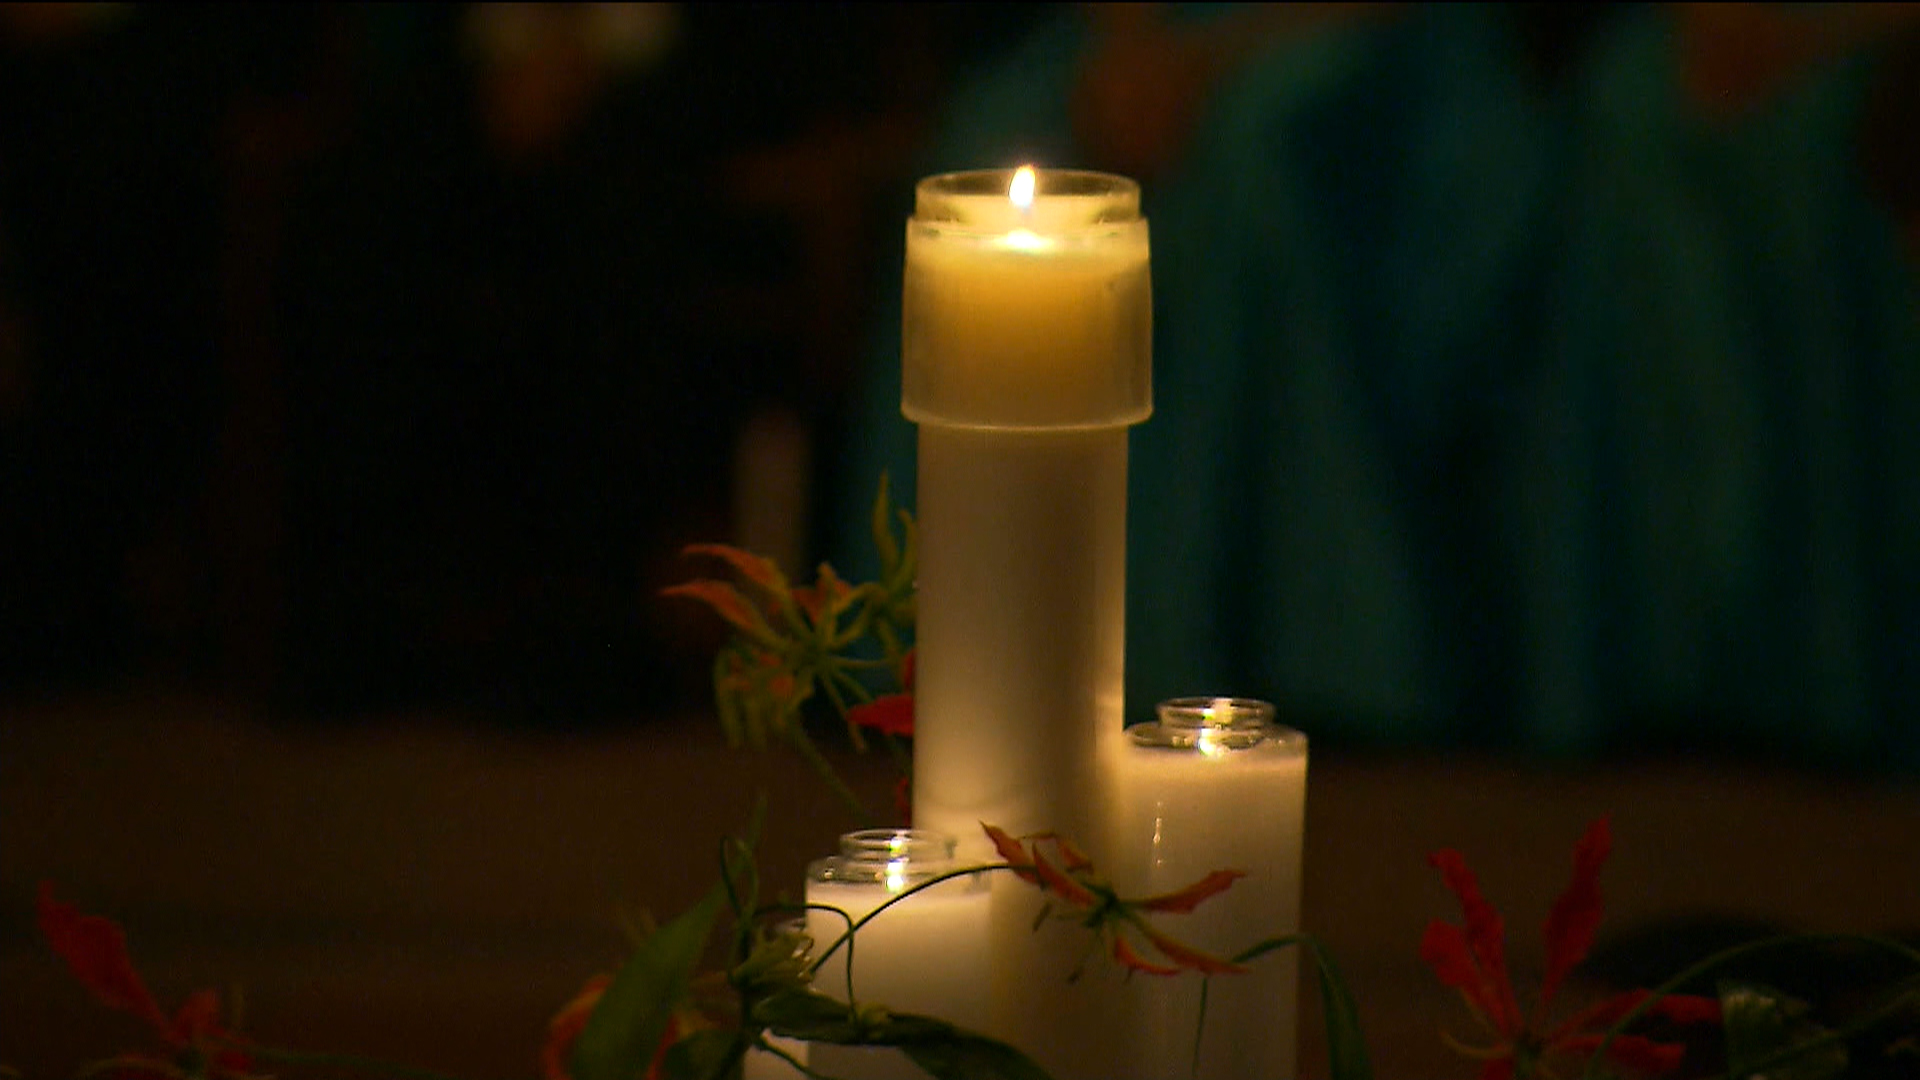 One year passes since Newtown tragedy